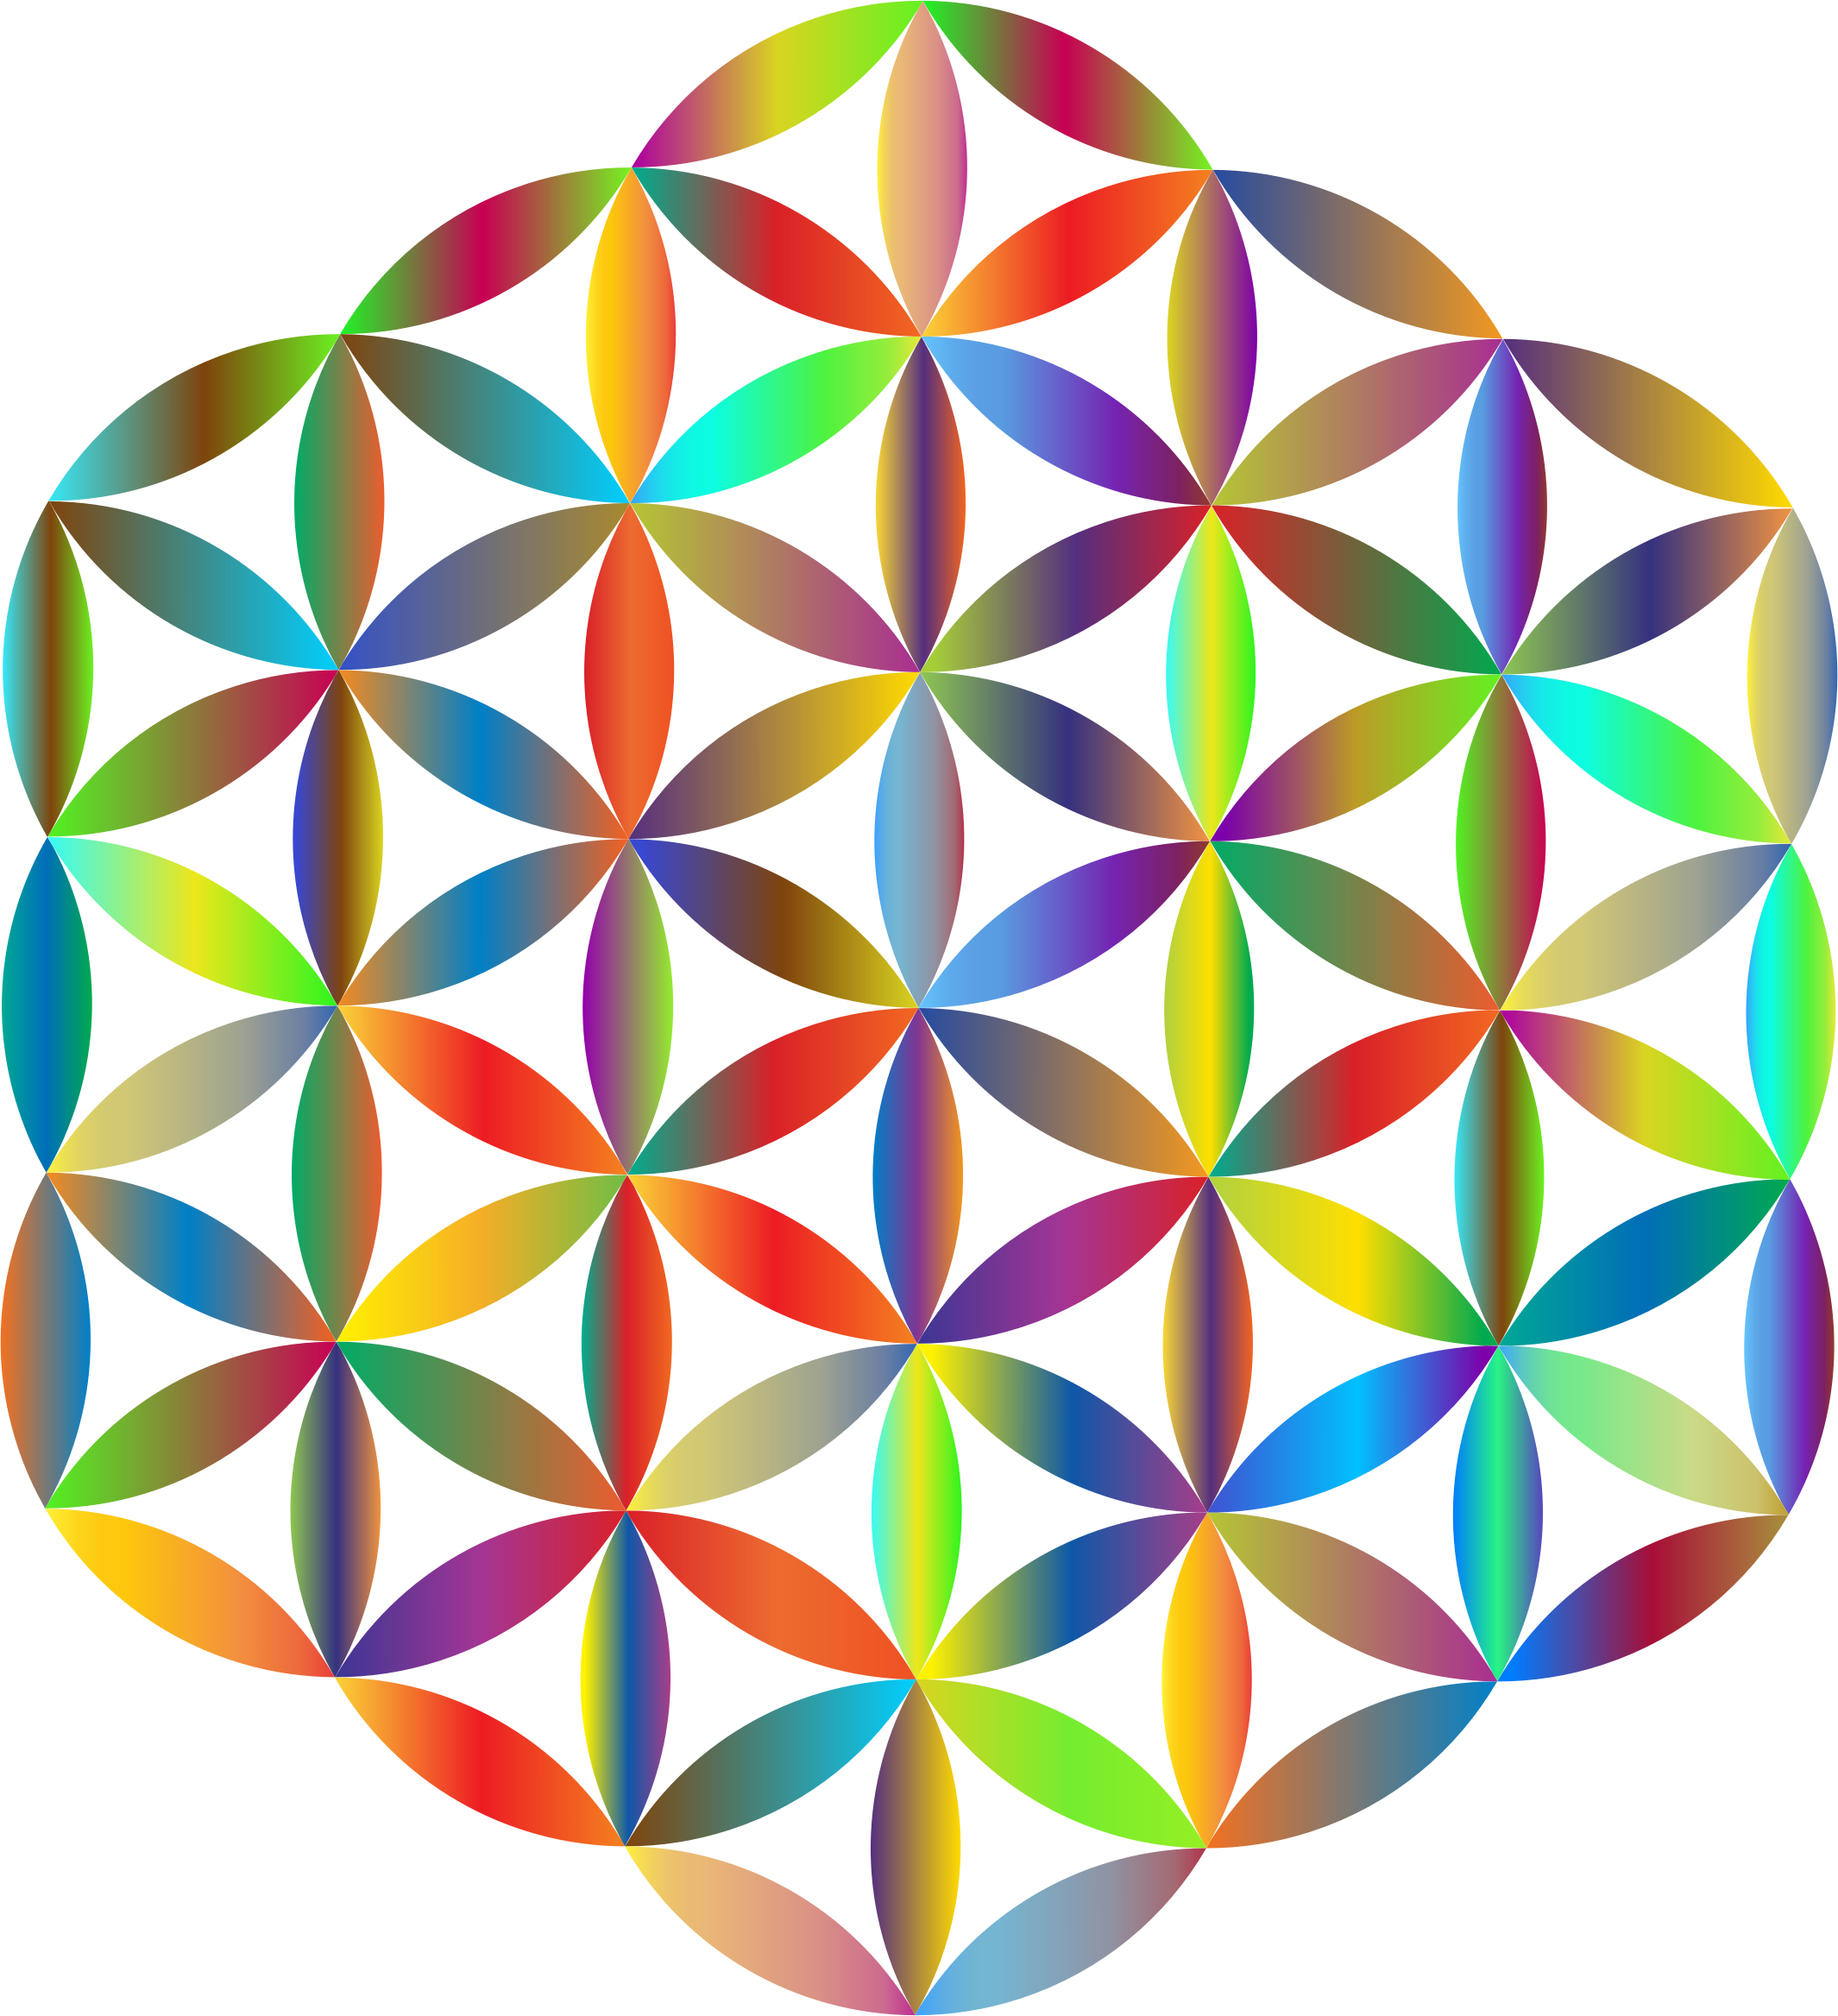 Clipart prismatic big image. Flower of life png